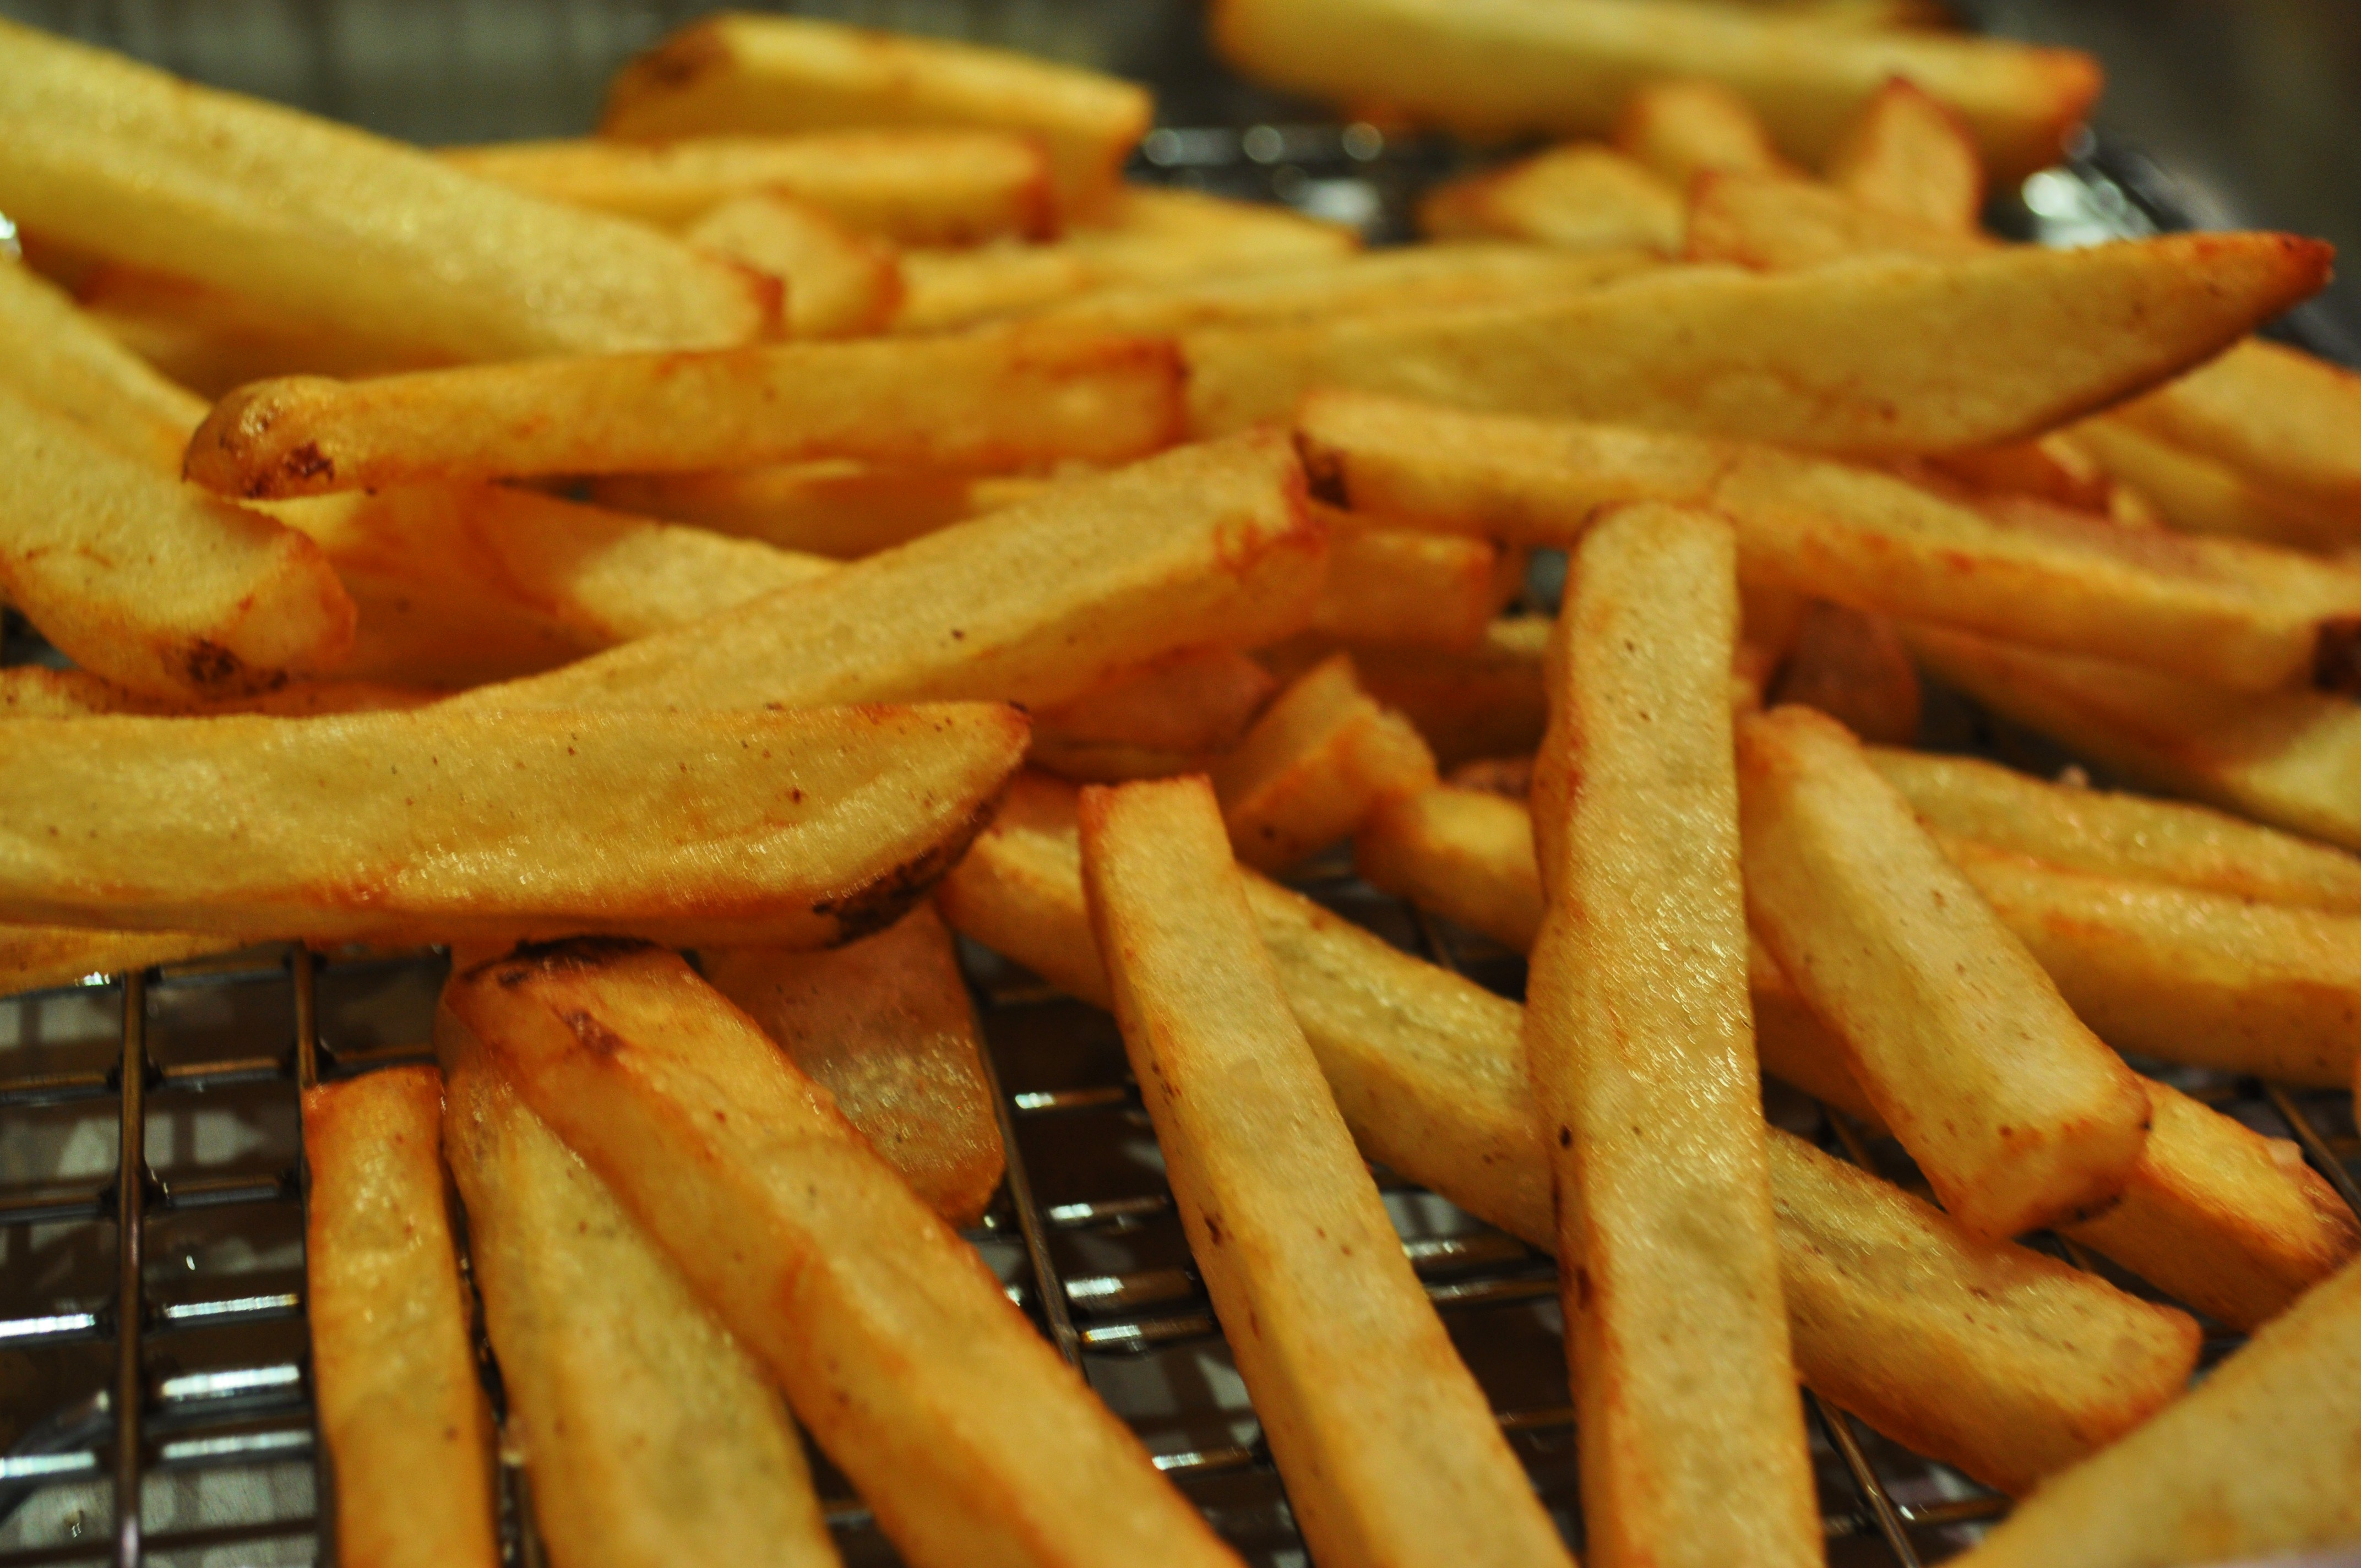 Perfectly cooked fries